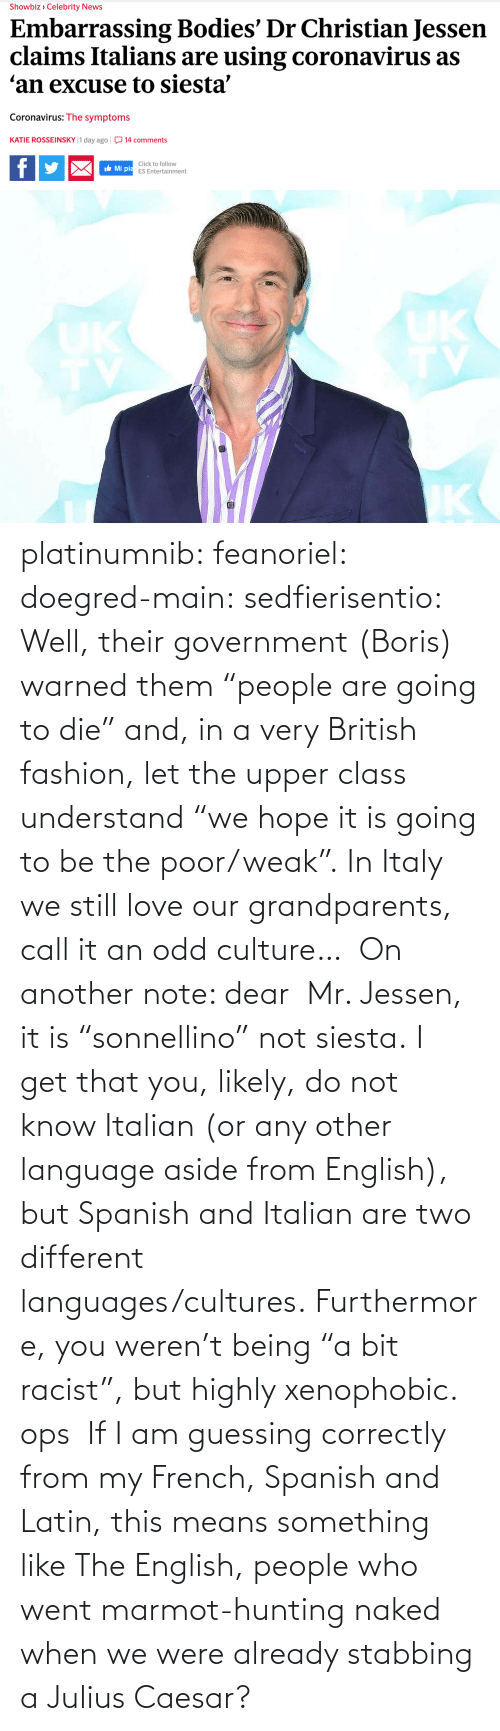 "Government: platinumnib:  feanoriel: doegred-main:  sedfierisentio:  Well, their government (Boris) warned them ""people are going to die"" and, in a very British fashion, let the upper class understand ""we hope it is going to be the poor/weak"". In Italy we still love our grandparents, call it an odd culture…  On another note: dear  Mr. Jessen, it is ""sonnellino"" not siesta. I get that you, likely, do not know Italian (or any other language aside from English), but Spanish and Italian are two different languages/cultures. Furthermore, you weren't being ""a bit racist"", but highly xenophobic.   ops   If I am guessing correctly from my French, Spanish and Latin, this means something like The English, people who went marmot-hunting naked when we were already stabbing a Julius Caesar?"